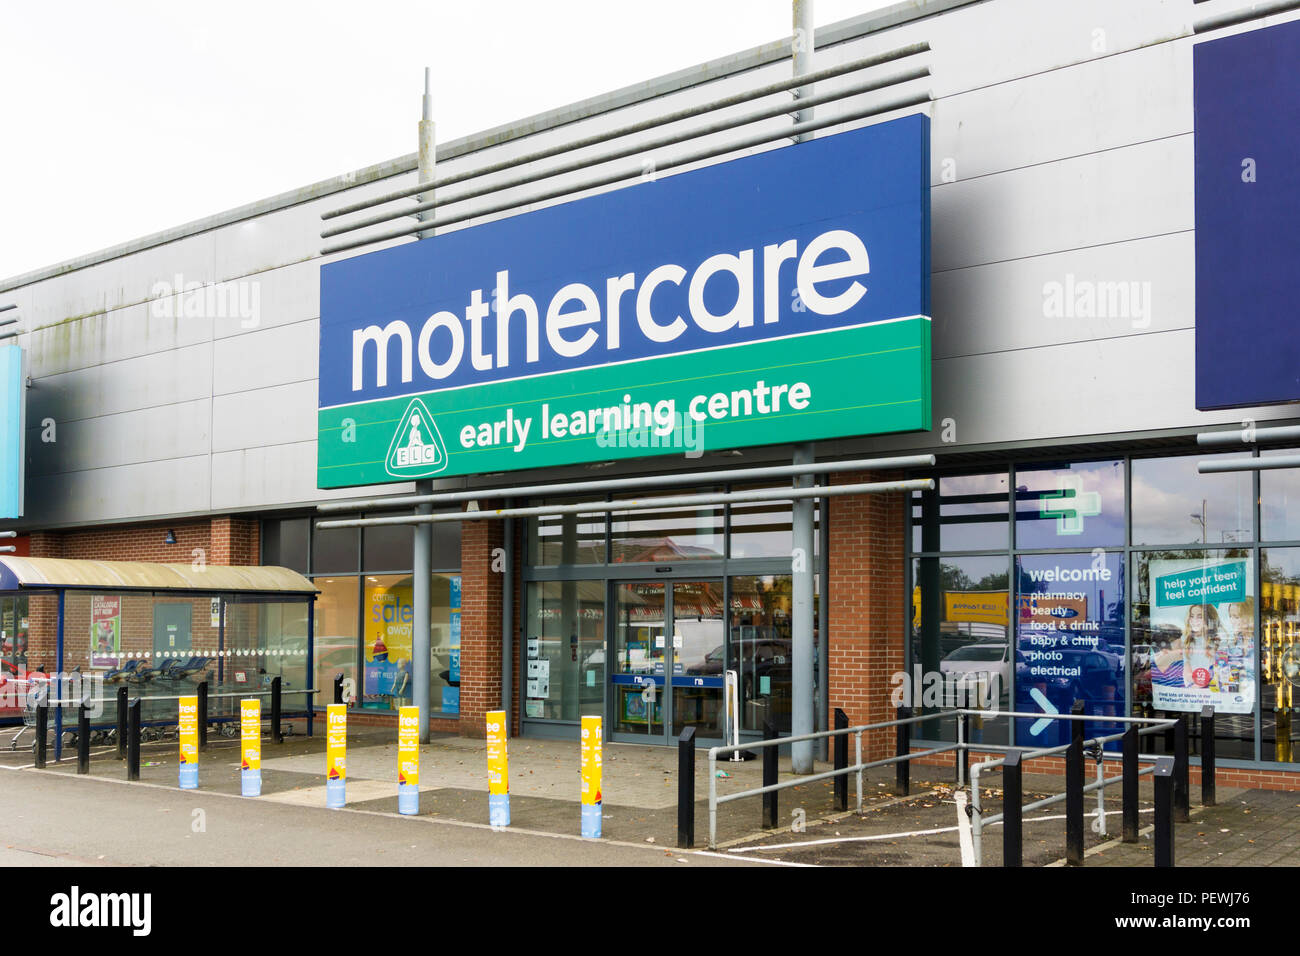 A branch of Mothercare containg an Early Learning Centre concession in the store. - Stock Image